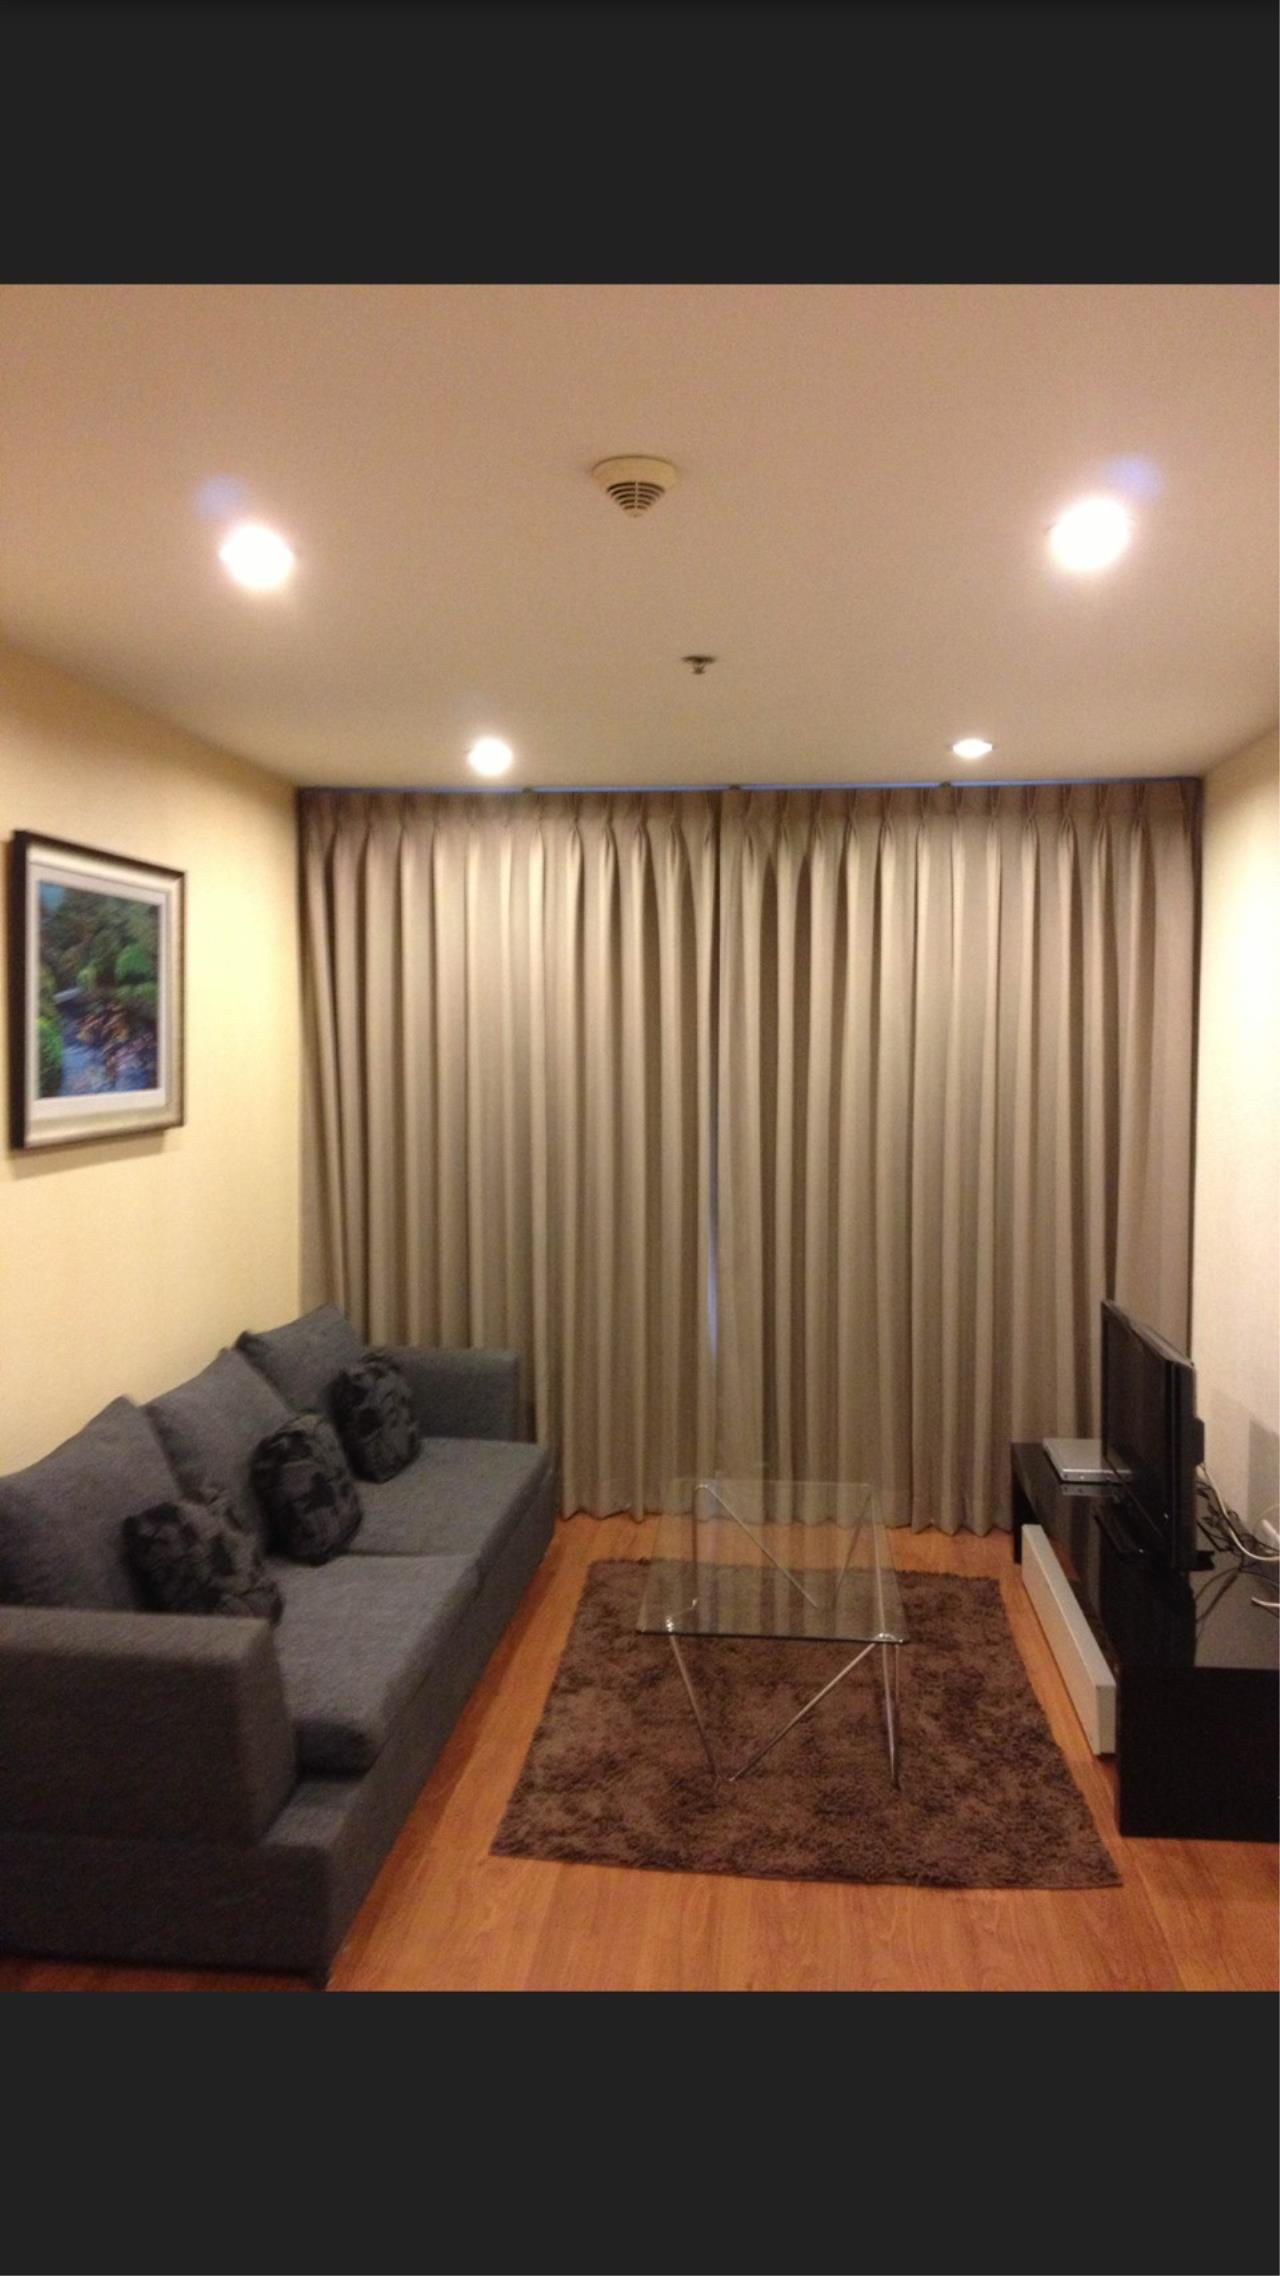 RE/MAX BestLife Agency's Condo One X Sukhumvit 26, Rent 1 bedroom, Phrom Pong 1